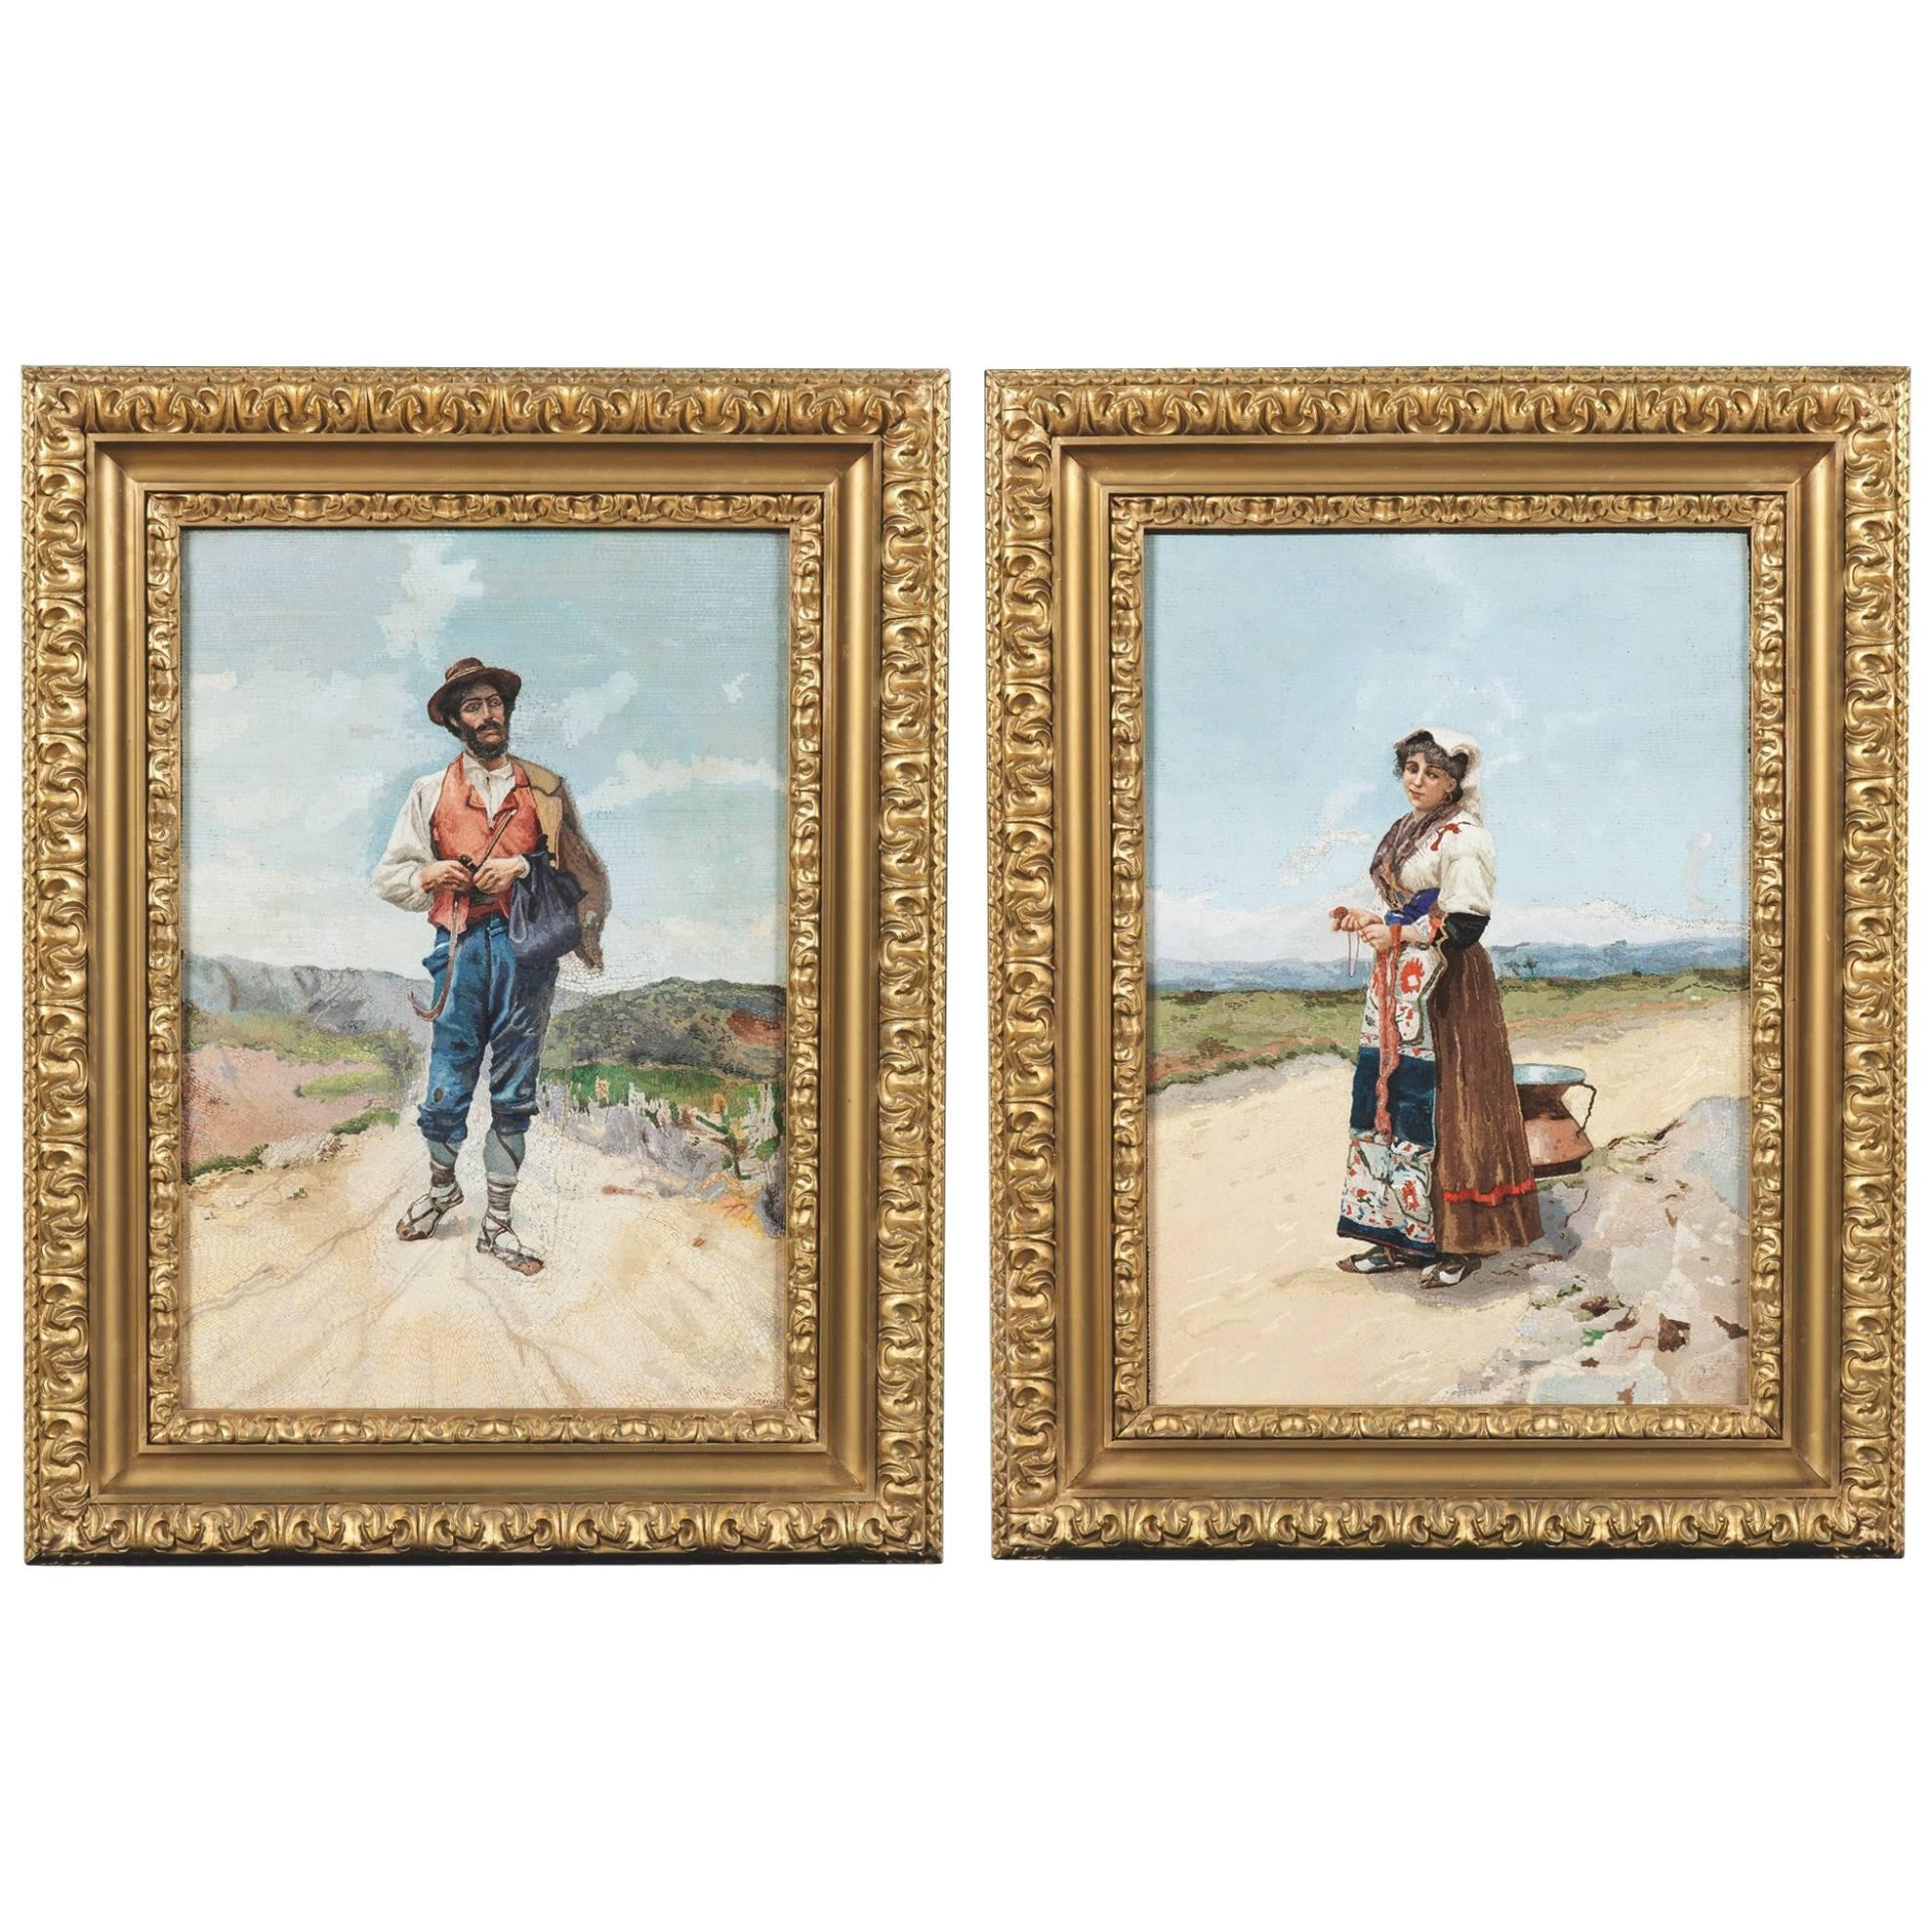 Pair of Italian Portraits Made of Handcrafted Micromosaic Tiles